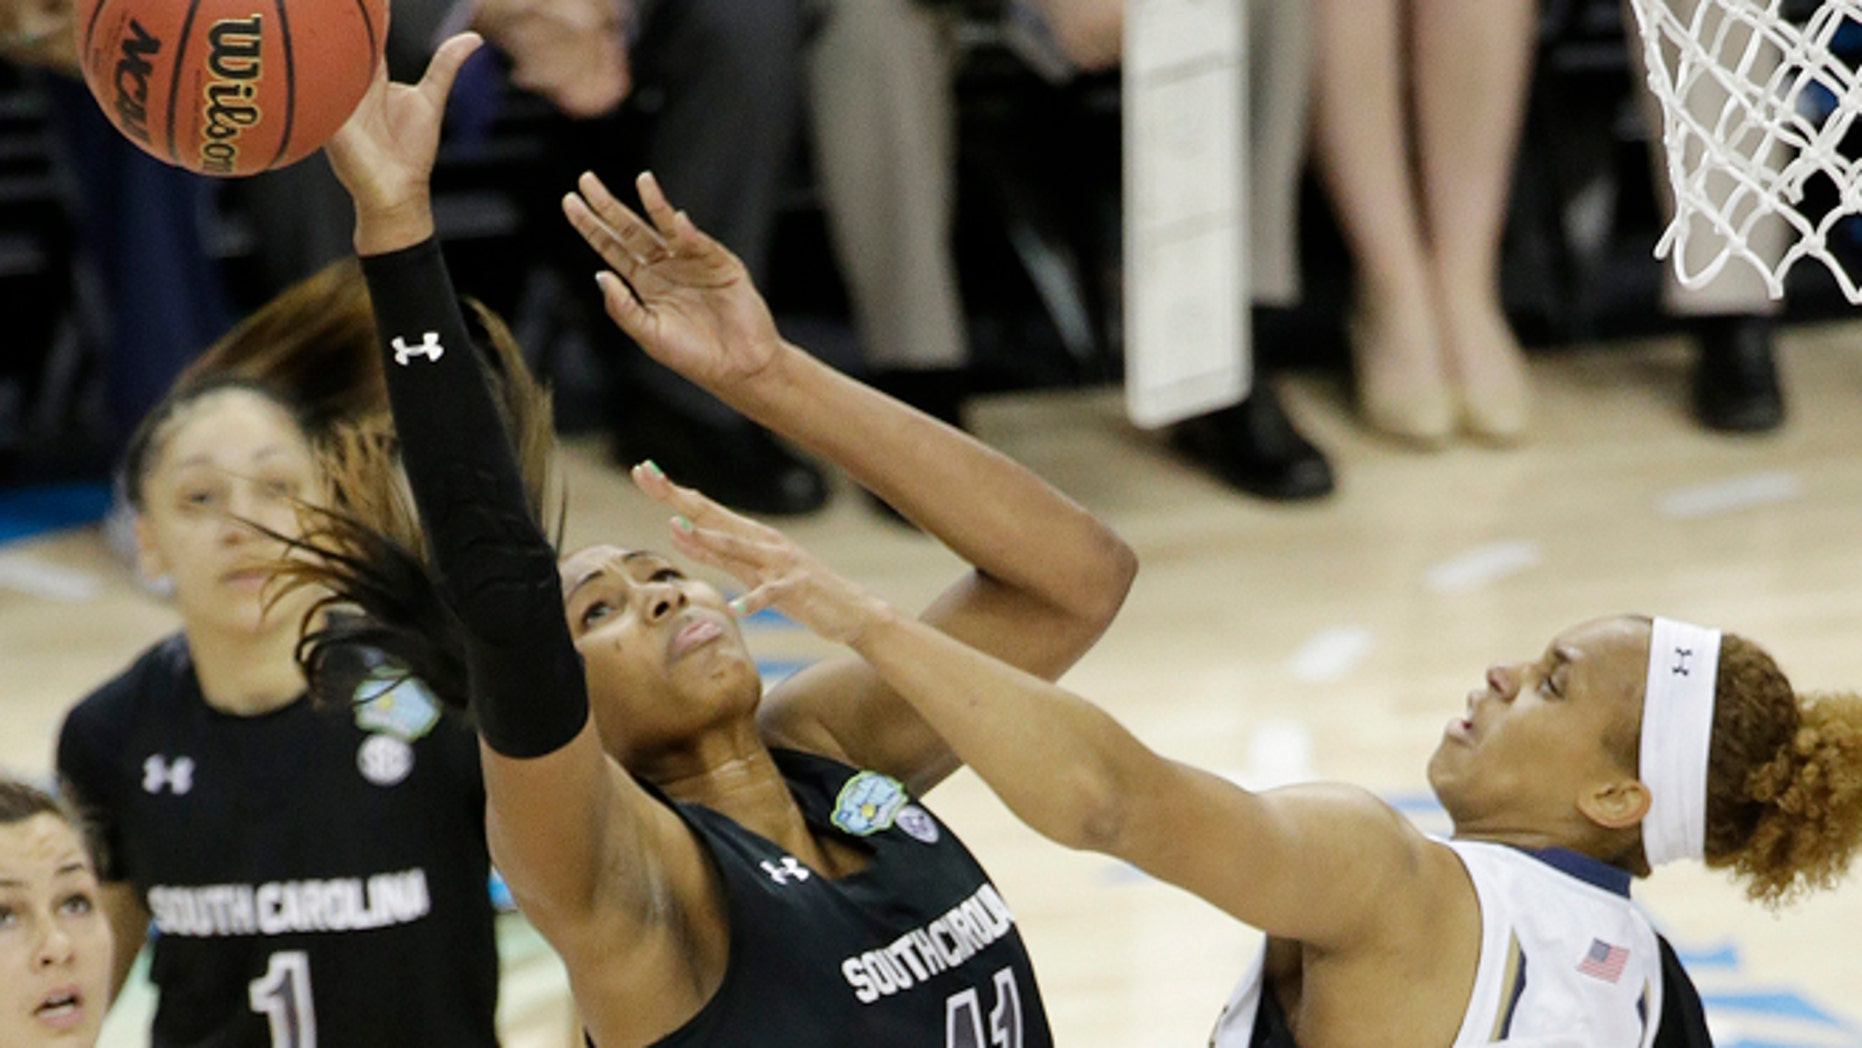 April 5, 2015: South Carolina center Alaina Coates (41) shoots against Notre Dame forward Brianna Turner (11) during the first half of the NCAA Women's Final Four tournament college basketball semifinal game.